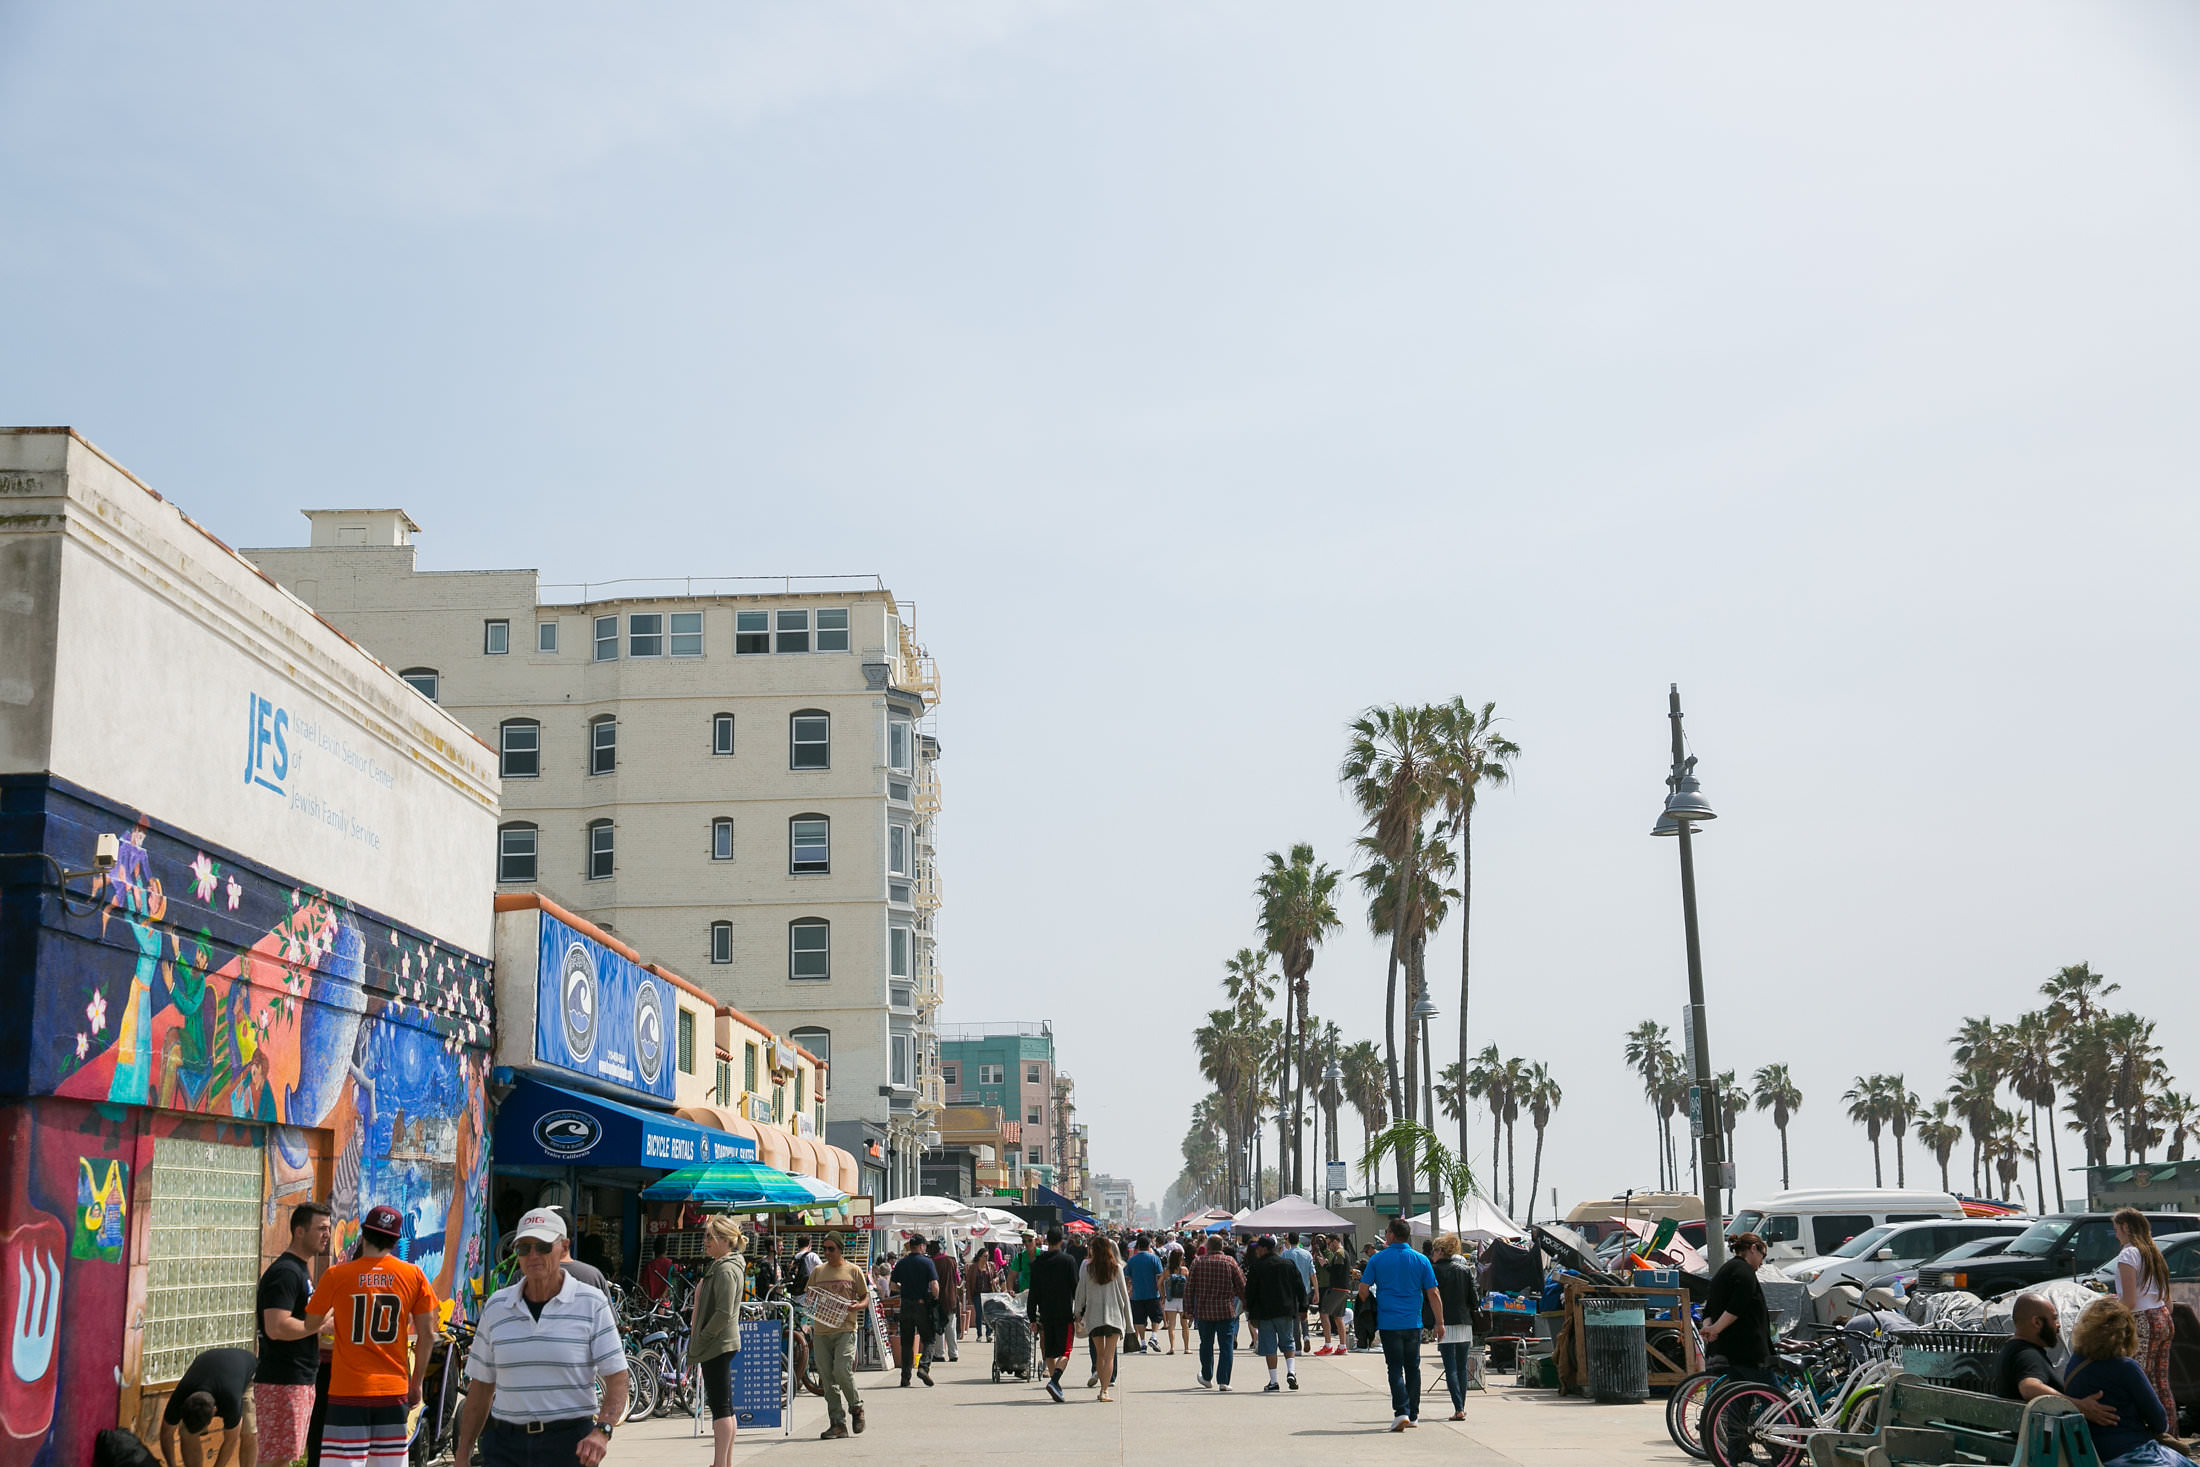 zambiese venice beach - photo#9